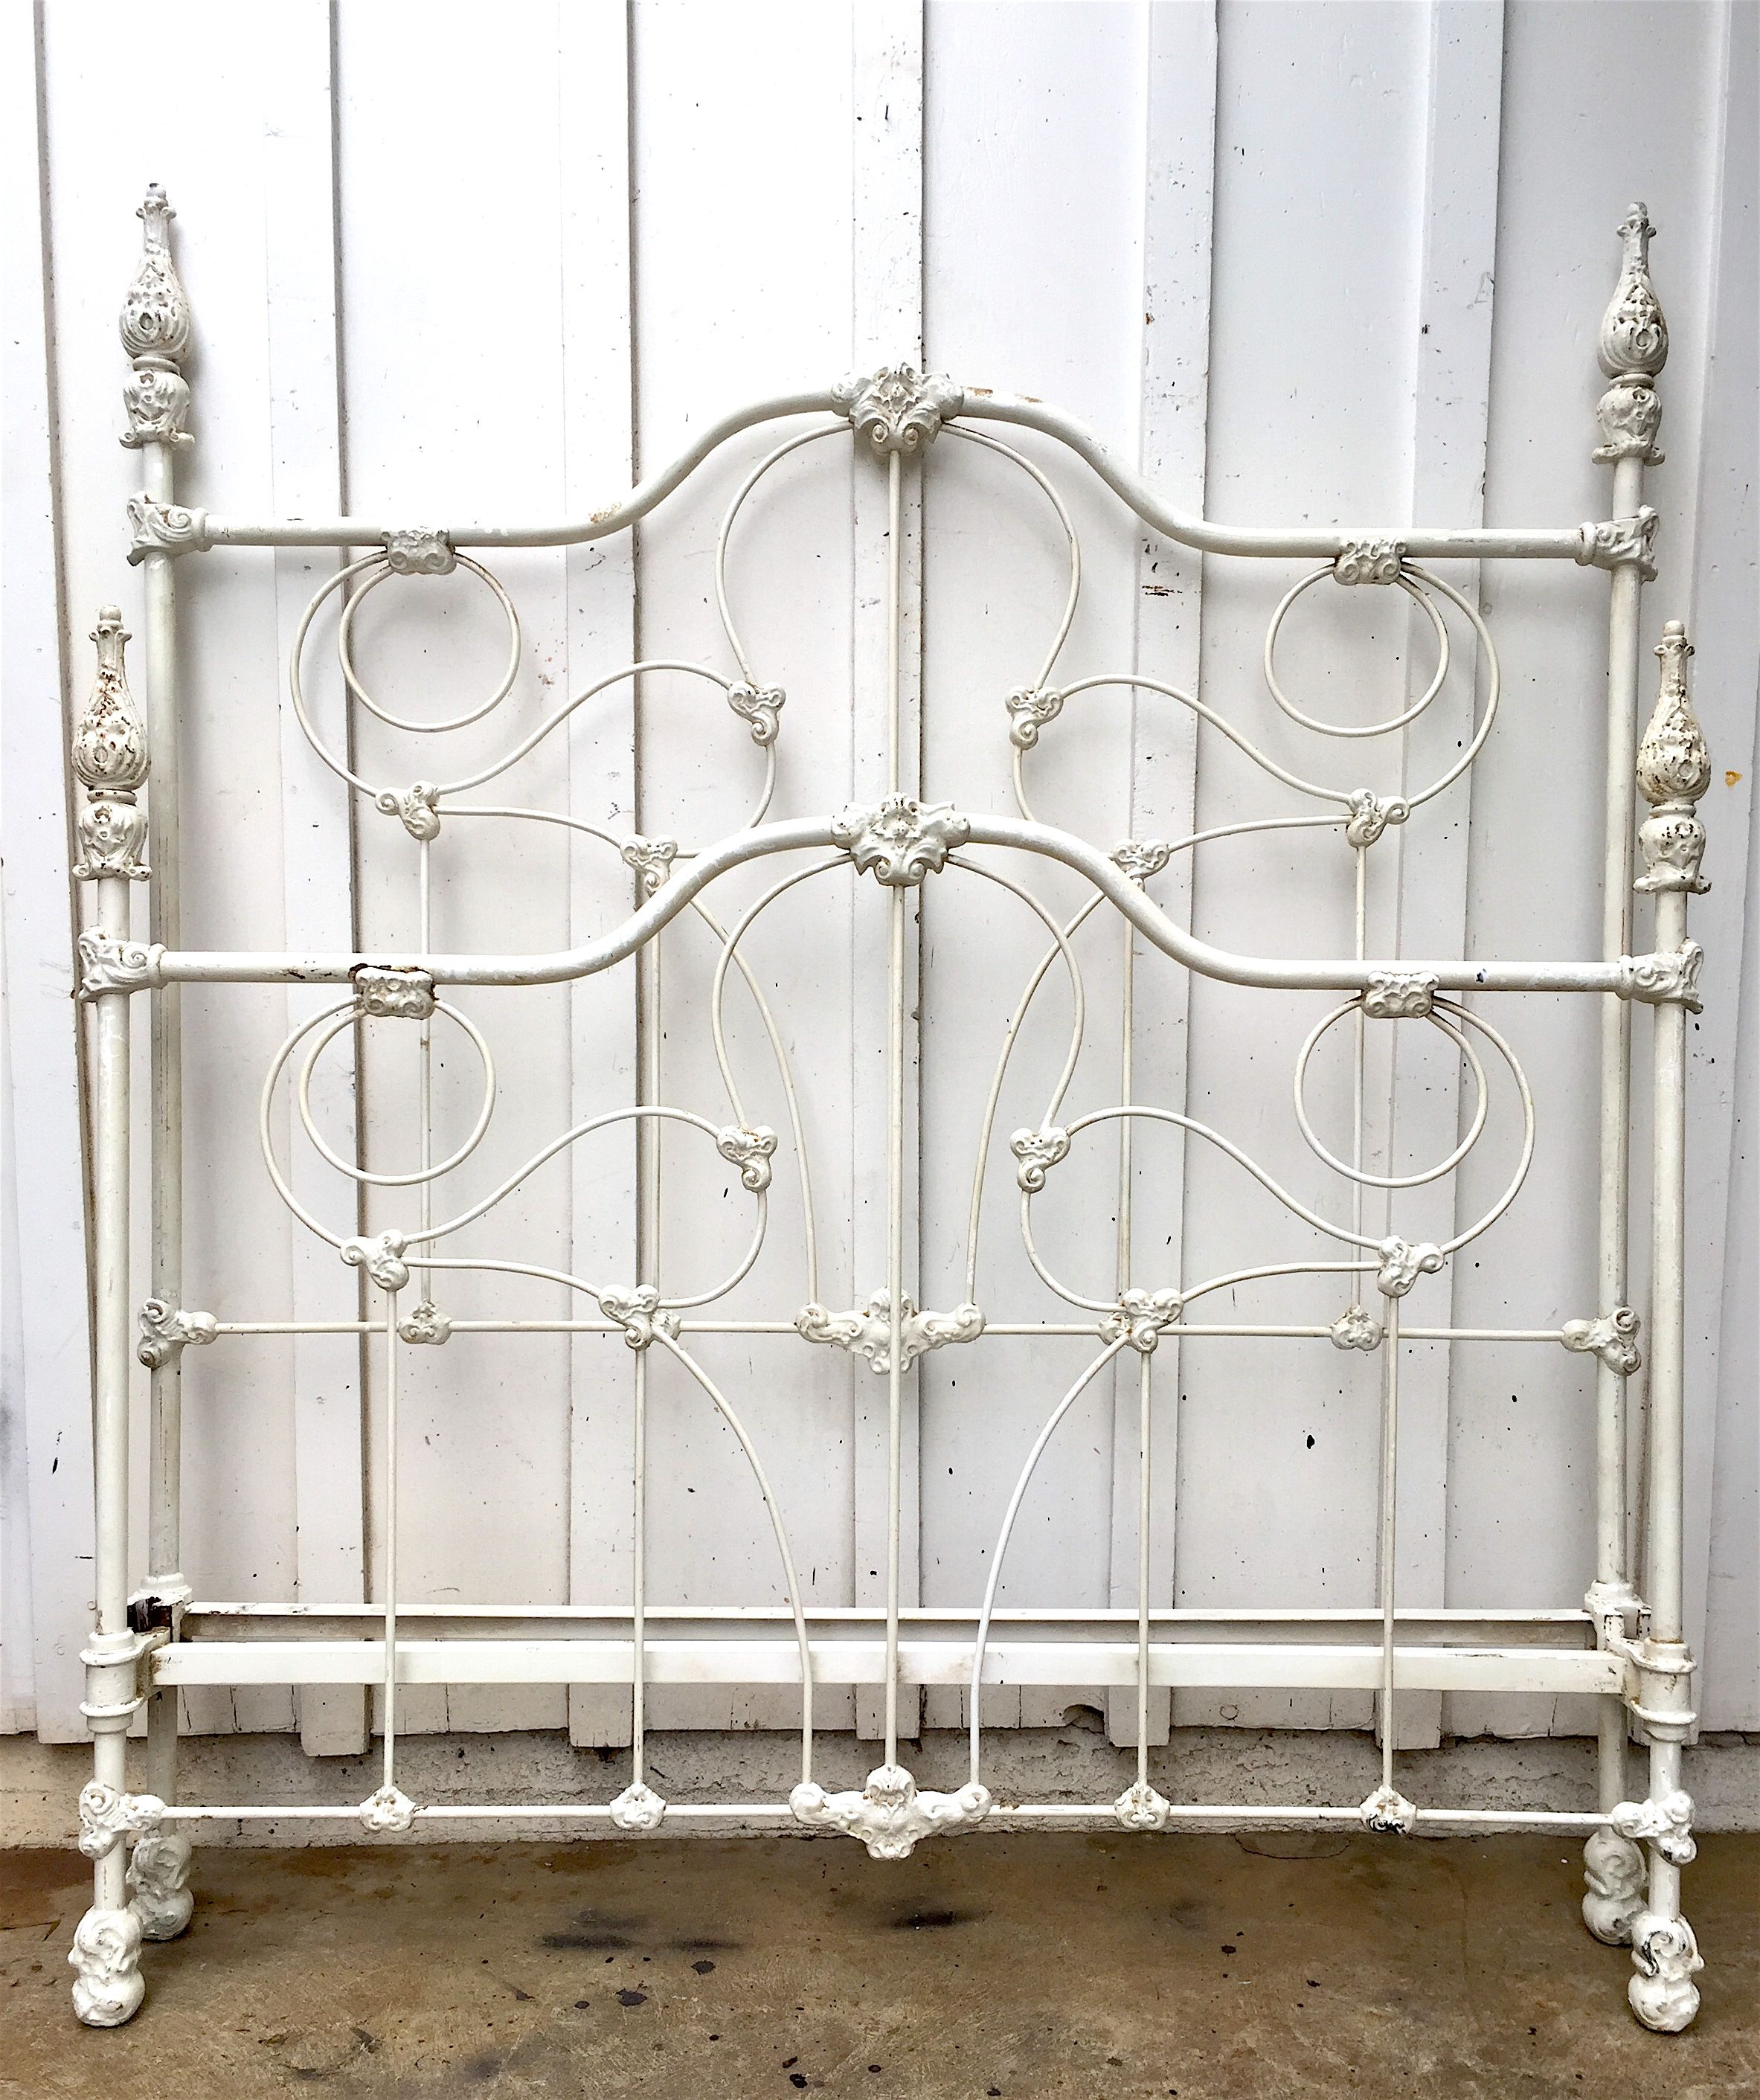 Original Four Poster Beds Like This One From The Mid 1800s Have Become One Of The More Difficult And Popular Ir Iron Bed Painted Iron Beds Wrought Iron Beds